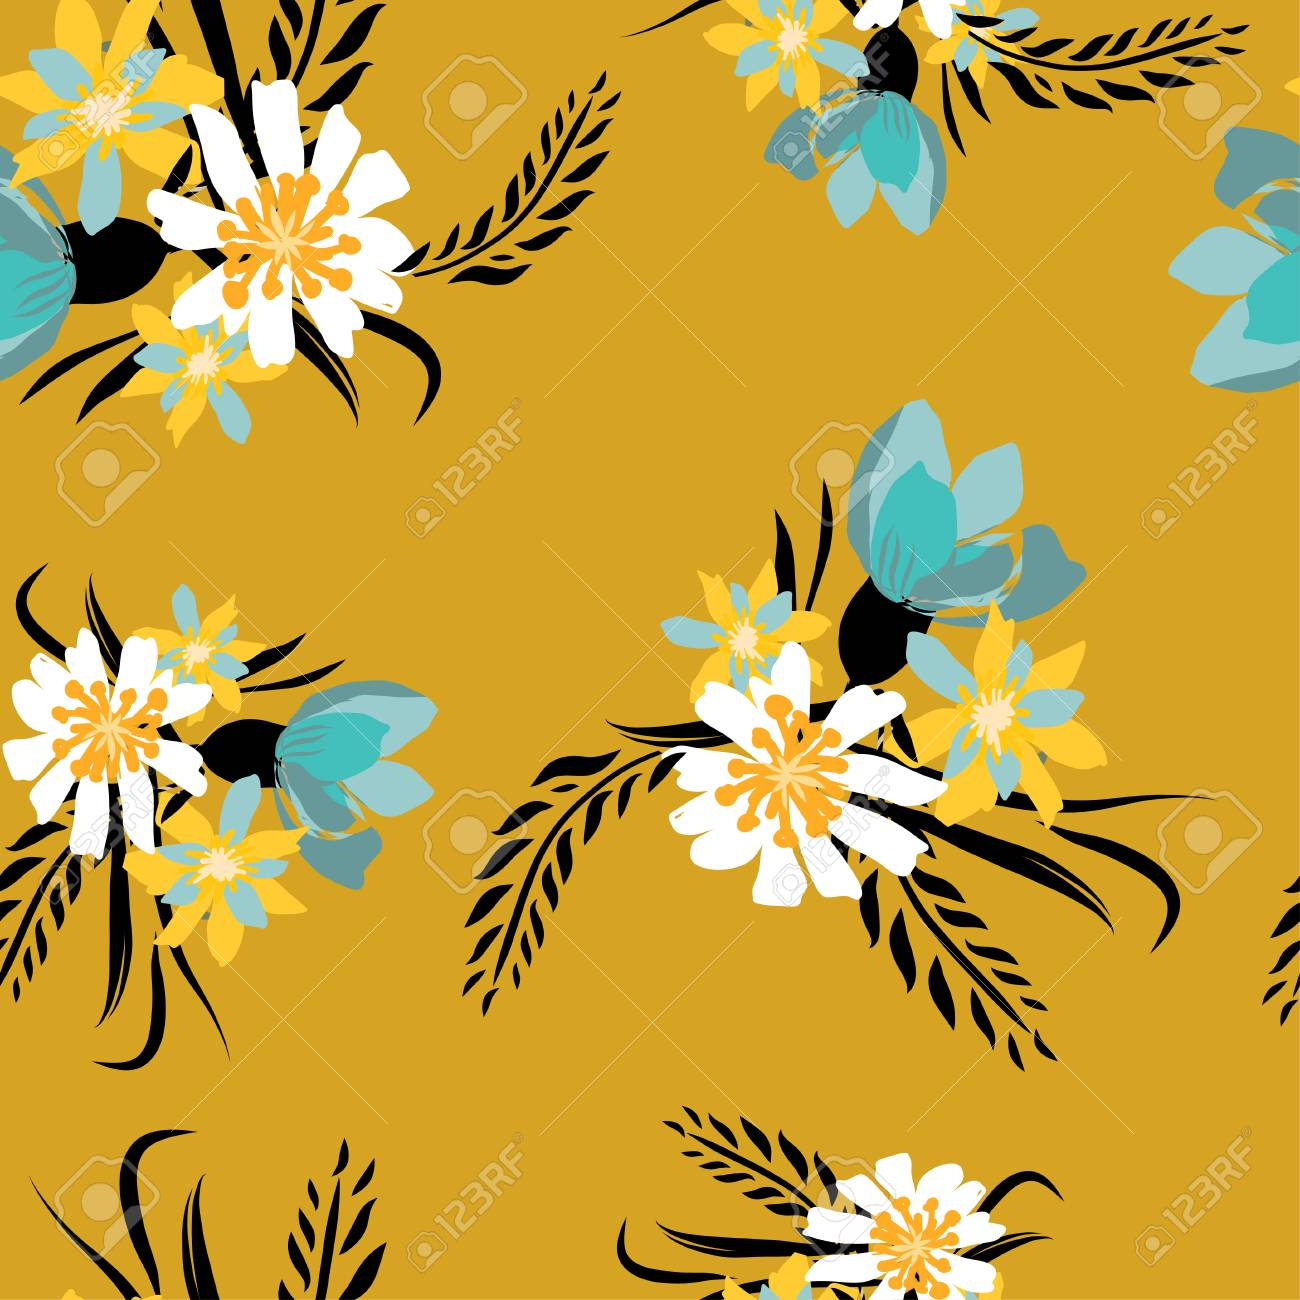 Seamless Pattern With Small Flowers On A Dark Yellow Background